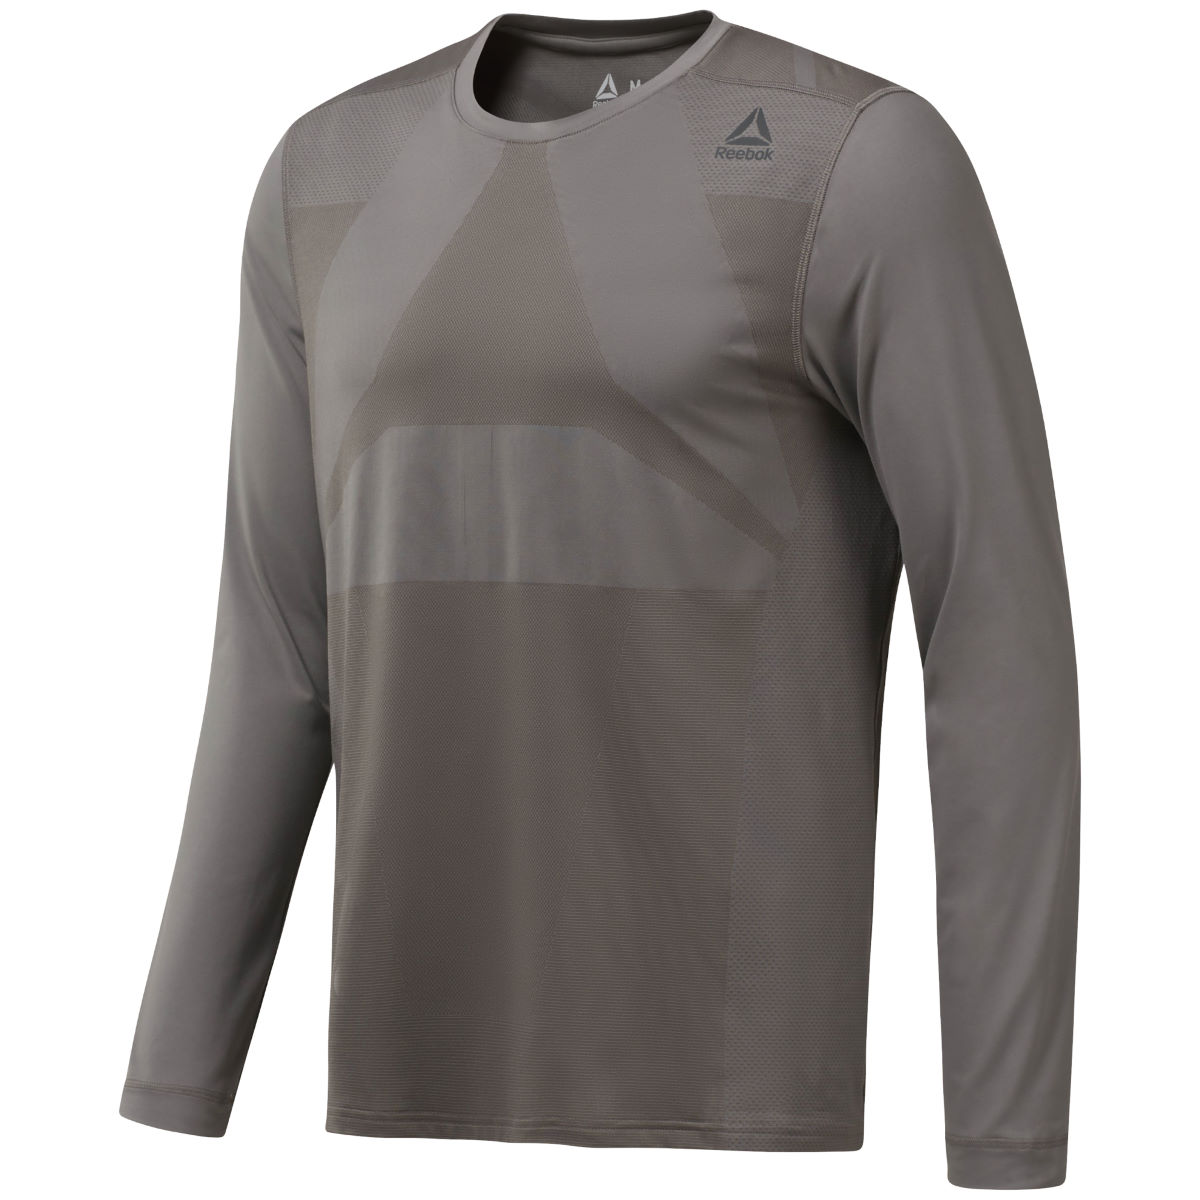 Reebok Reebok Thermowarm Vent Long Sleeve Tee   Long Sleeve Running Tops